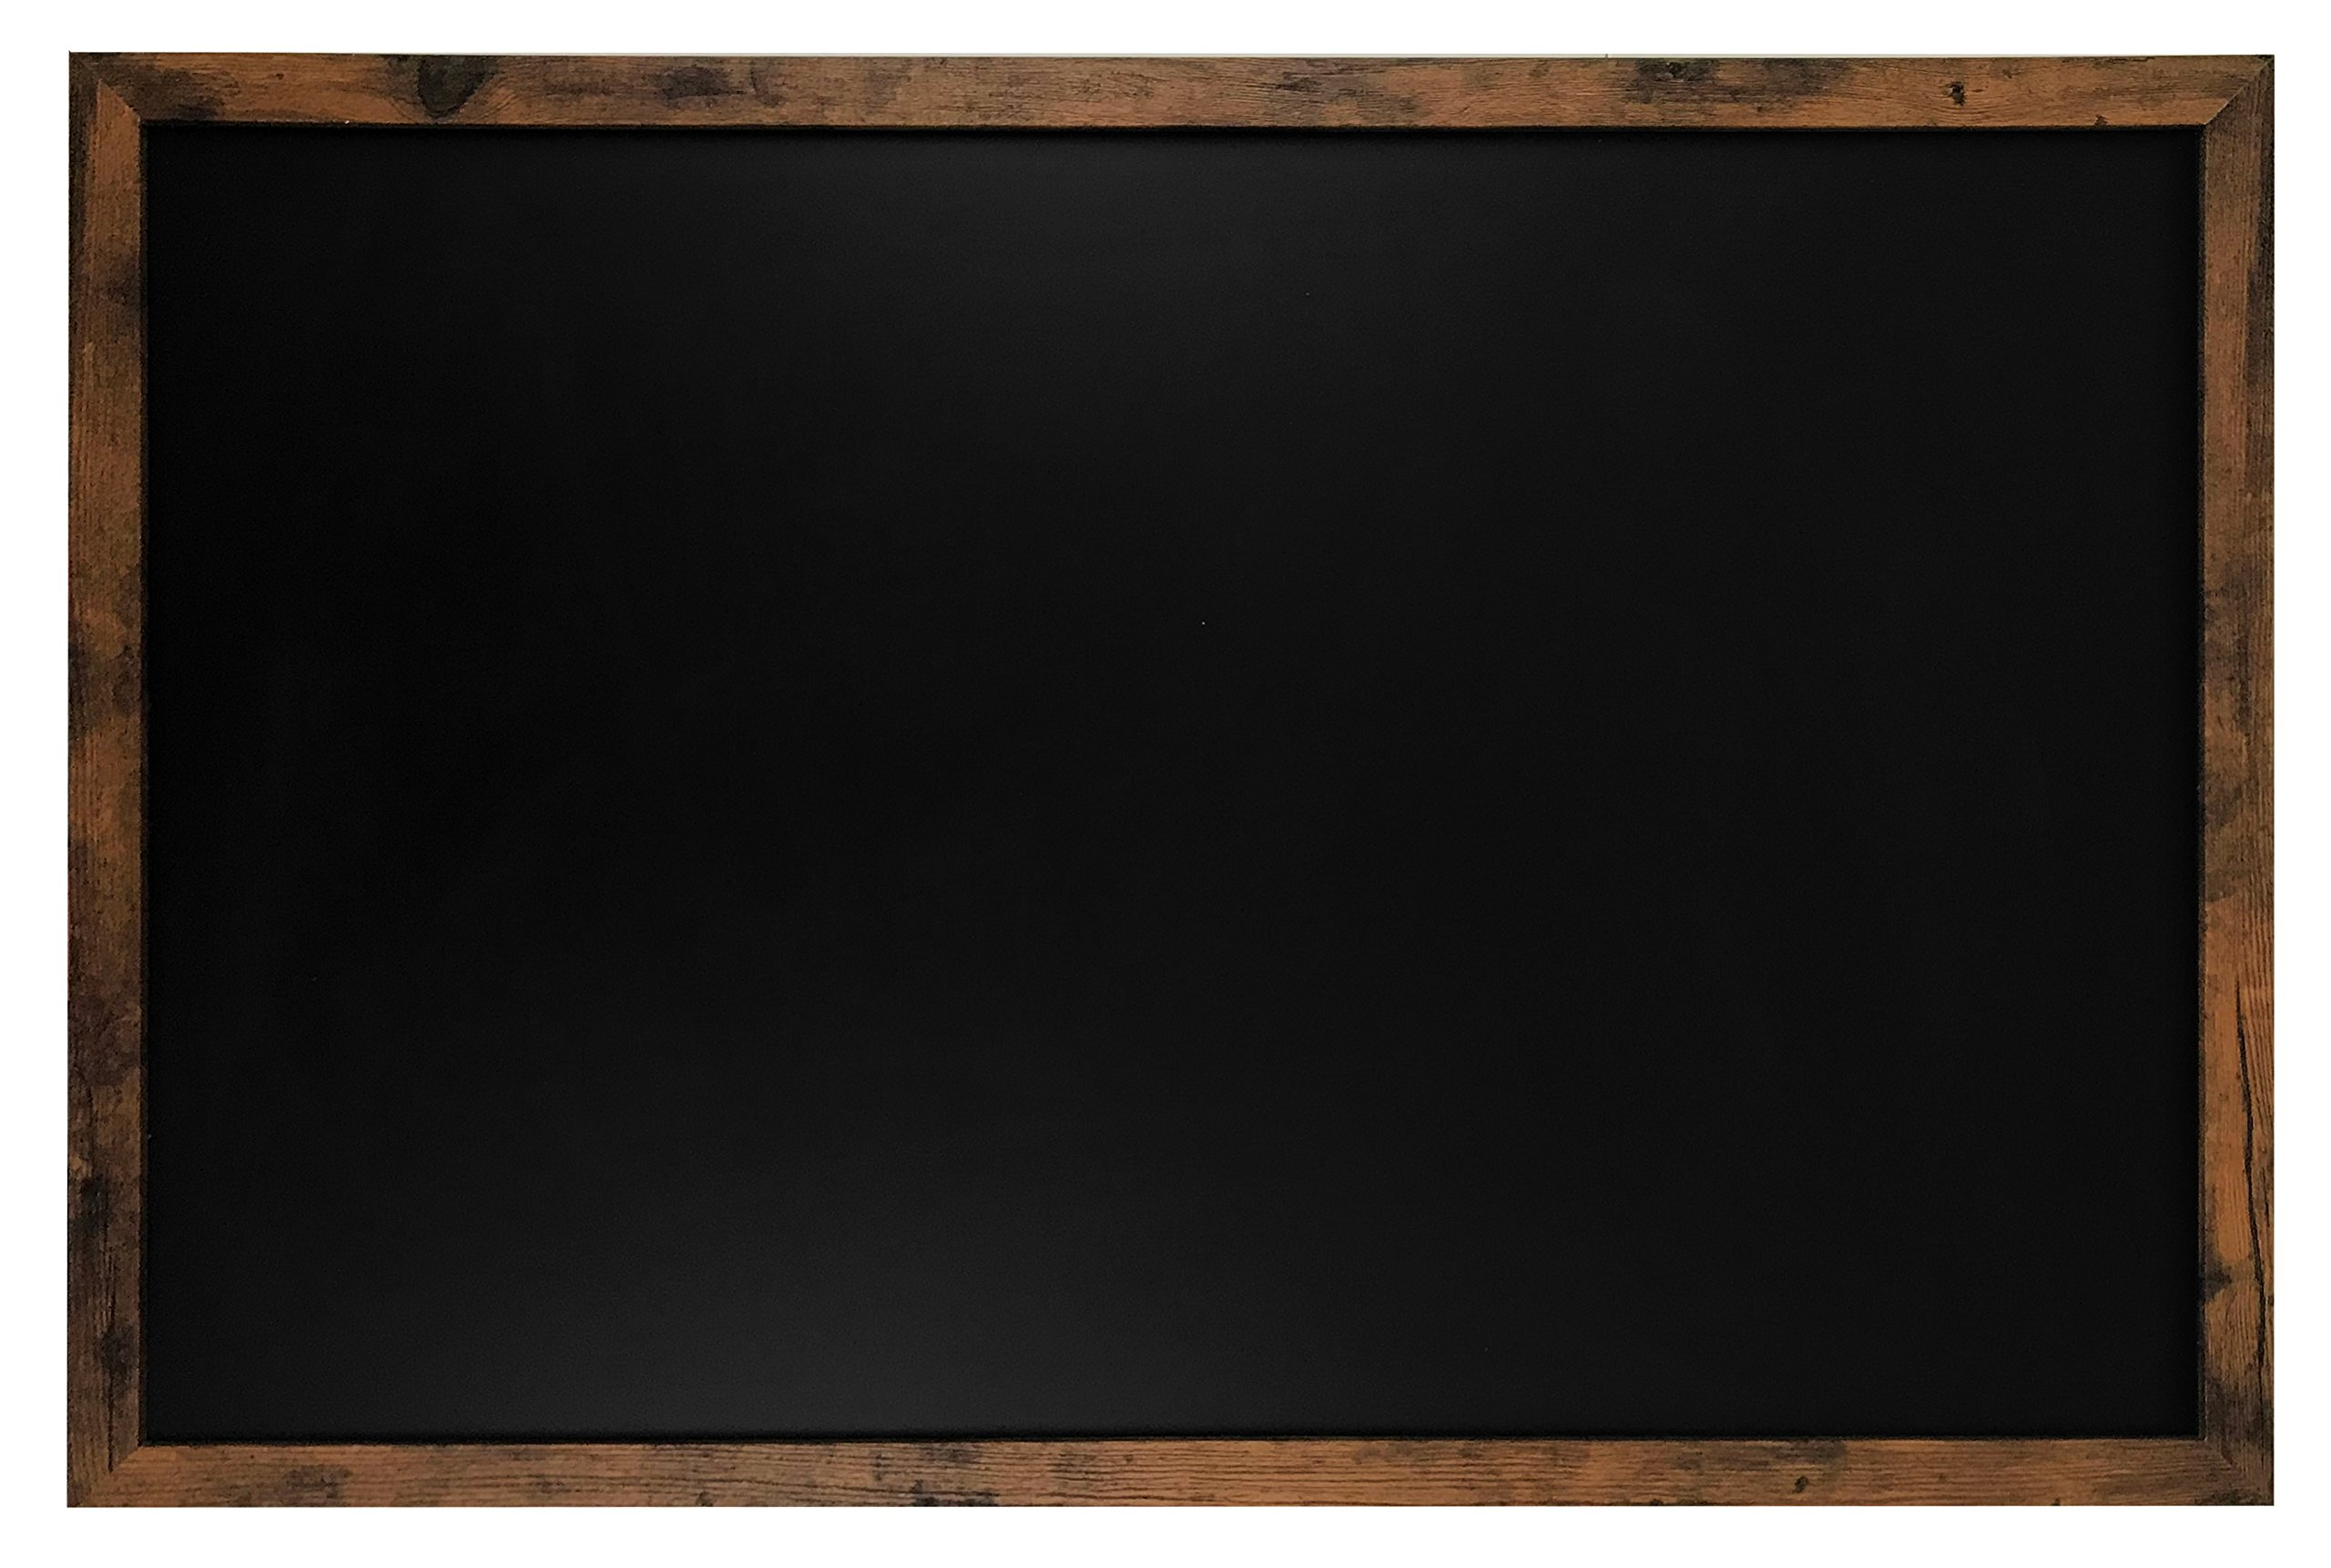 Rustic Wood Premium Surface Magnetic Large Chalk Board- 24''x36'' Perfect for Chalk Markers and Home Decor